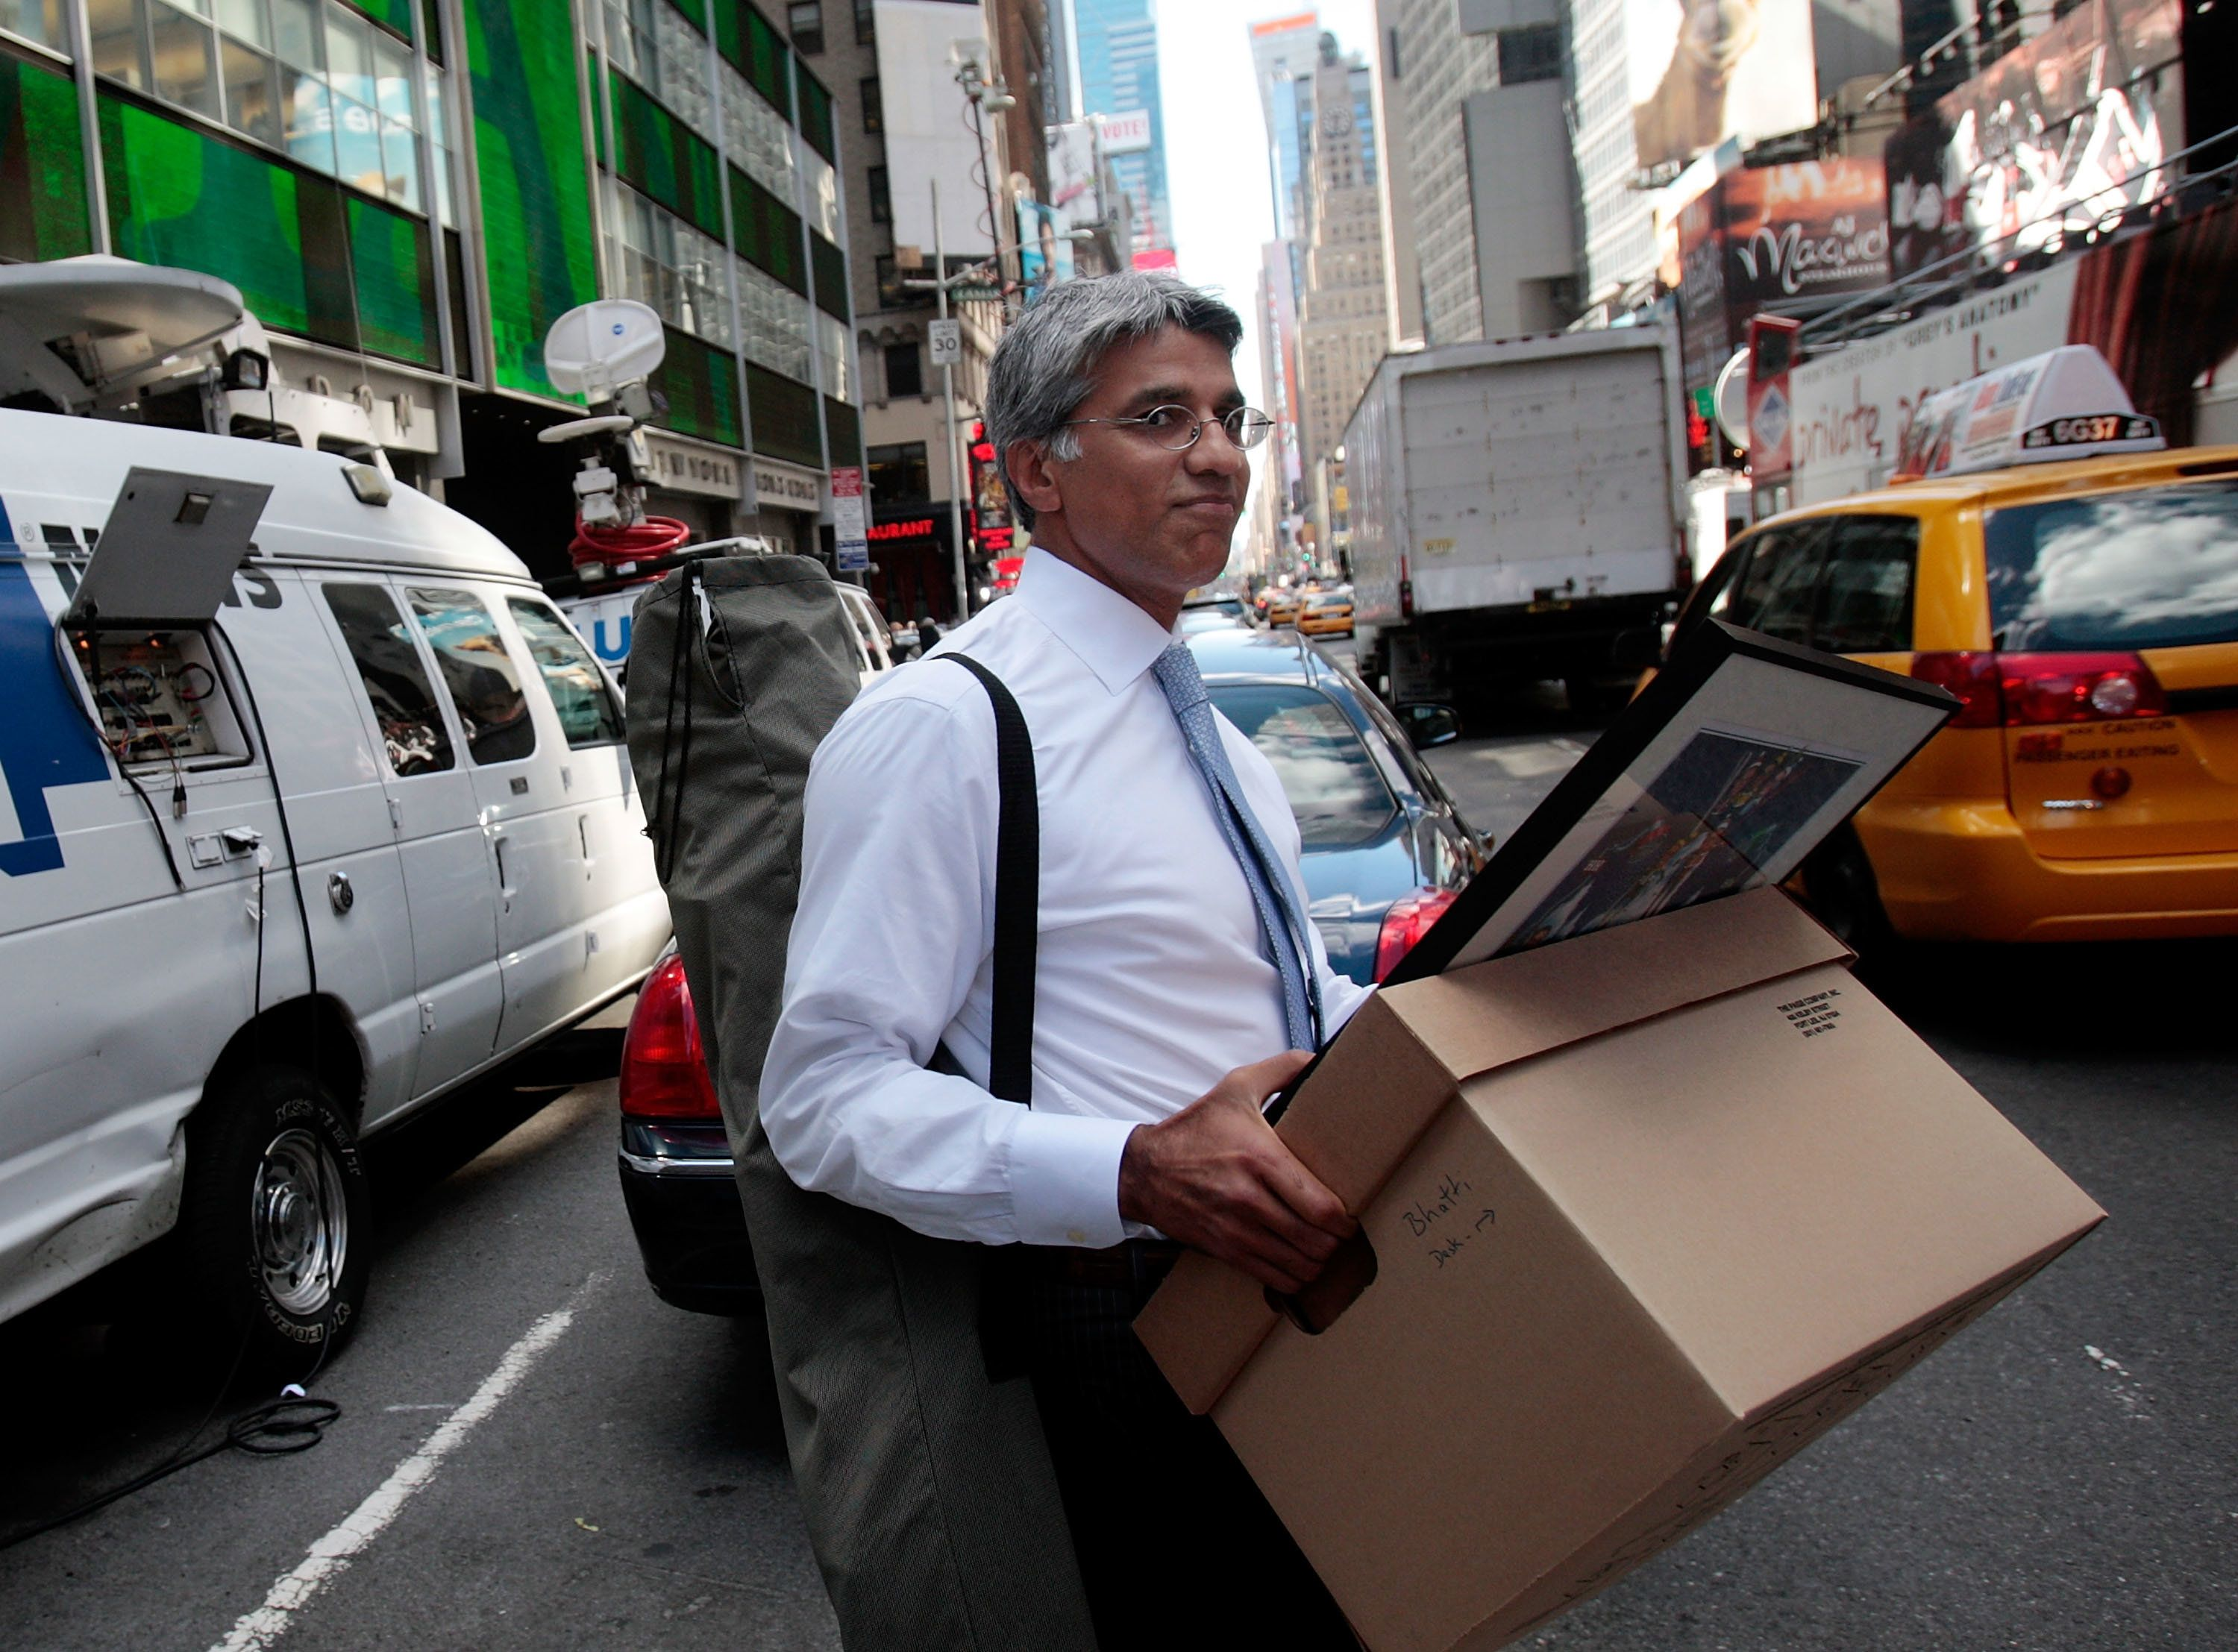 NEW YORK - SEPTEMBER 15:  An employee of Lehman Brothers Holdings Inc. carries a box out of the company's headquarters building (background) September 15, 2008 in New York City.  Lehman Brothers filed a Chapter 11 bankruptcy petition in U.S. Bankruptcy Court after attempts to rescue the storied financial firm failed.  (Photo by Chris Hondros/Getty Images)